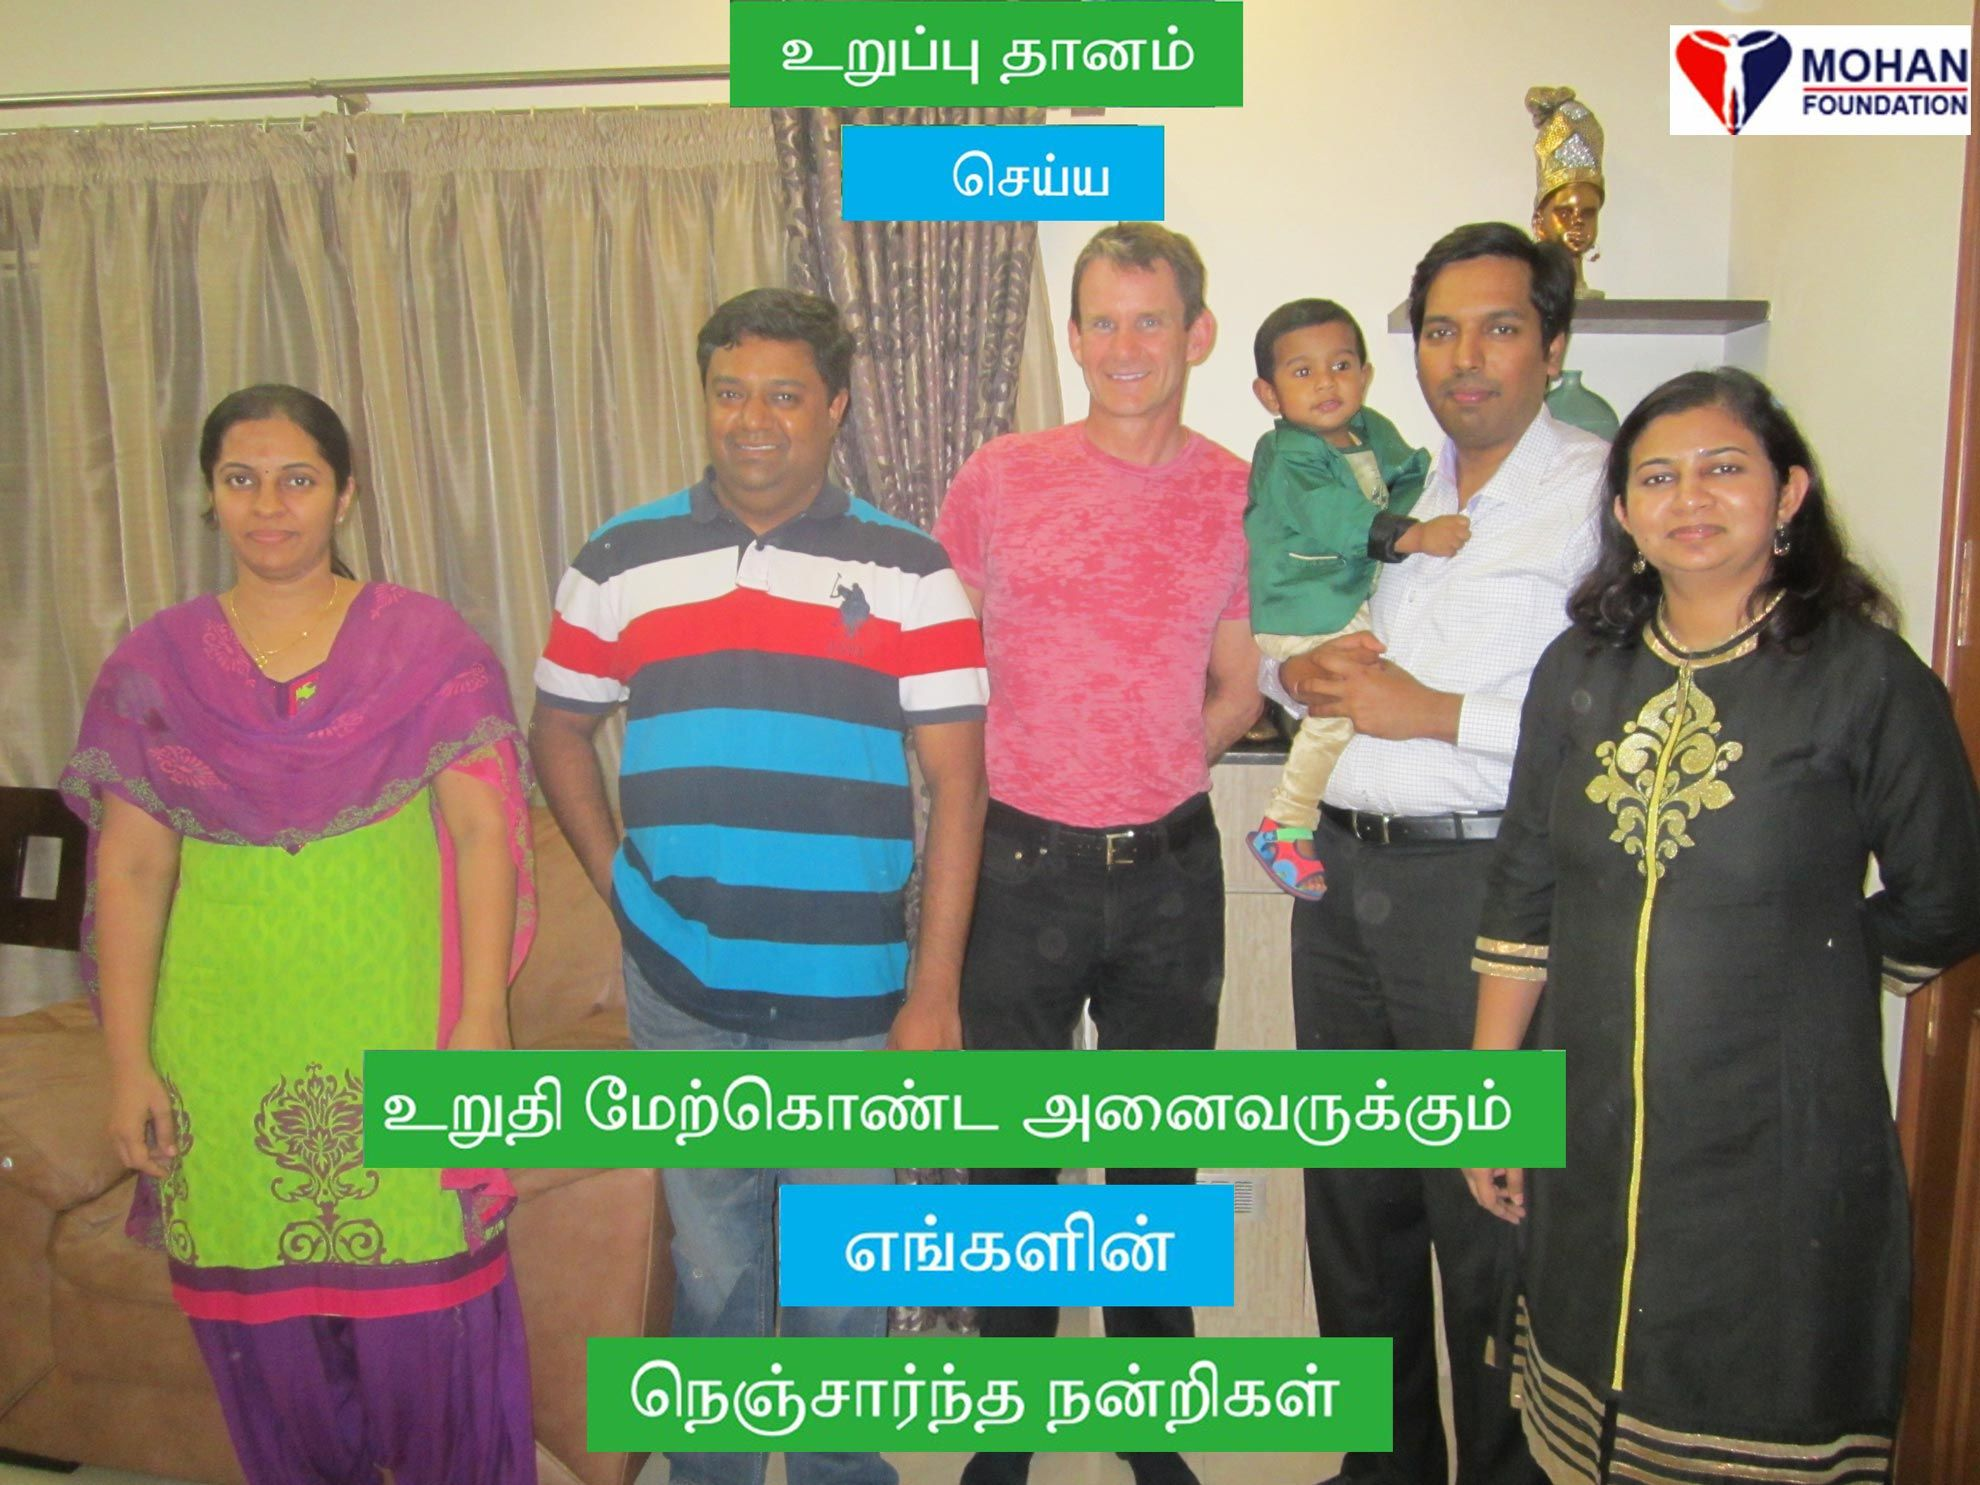 """""""We Love You for Being an Organ Donor"""" in Tamil script. Dr. Barry goes to India August 2014!"""